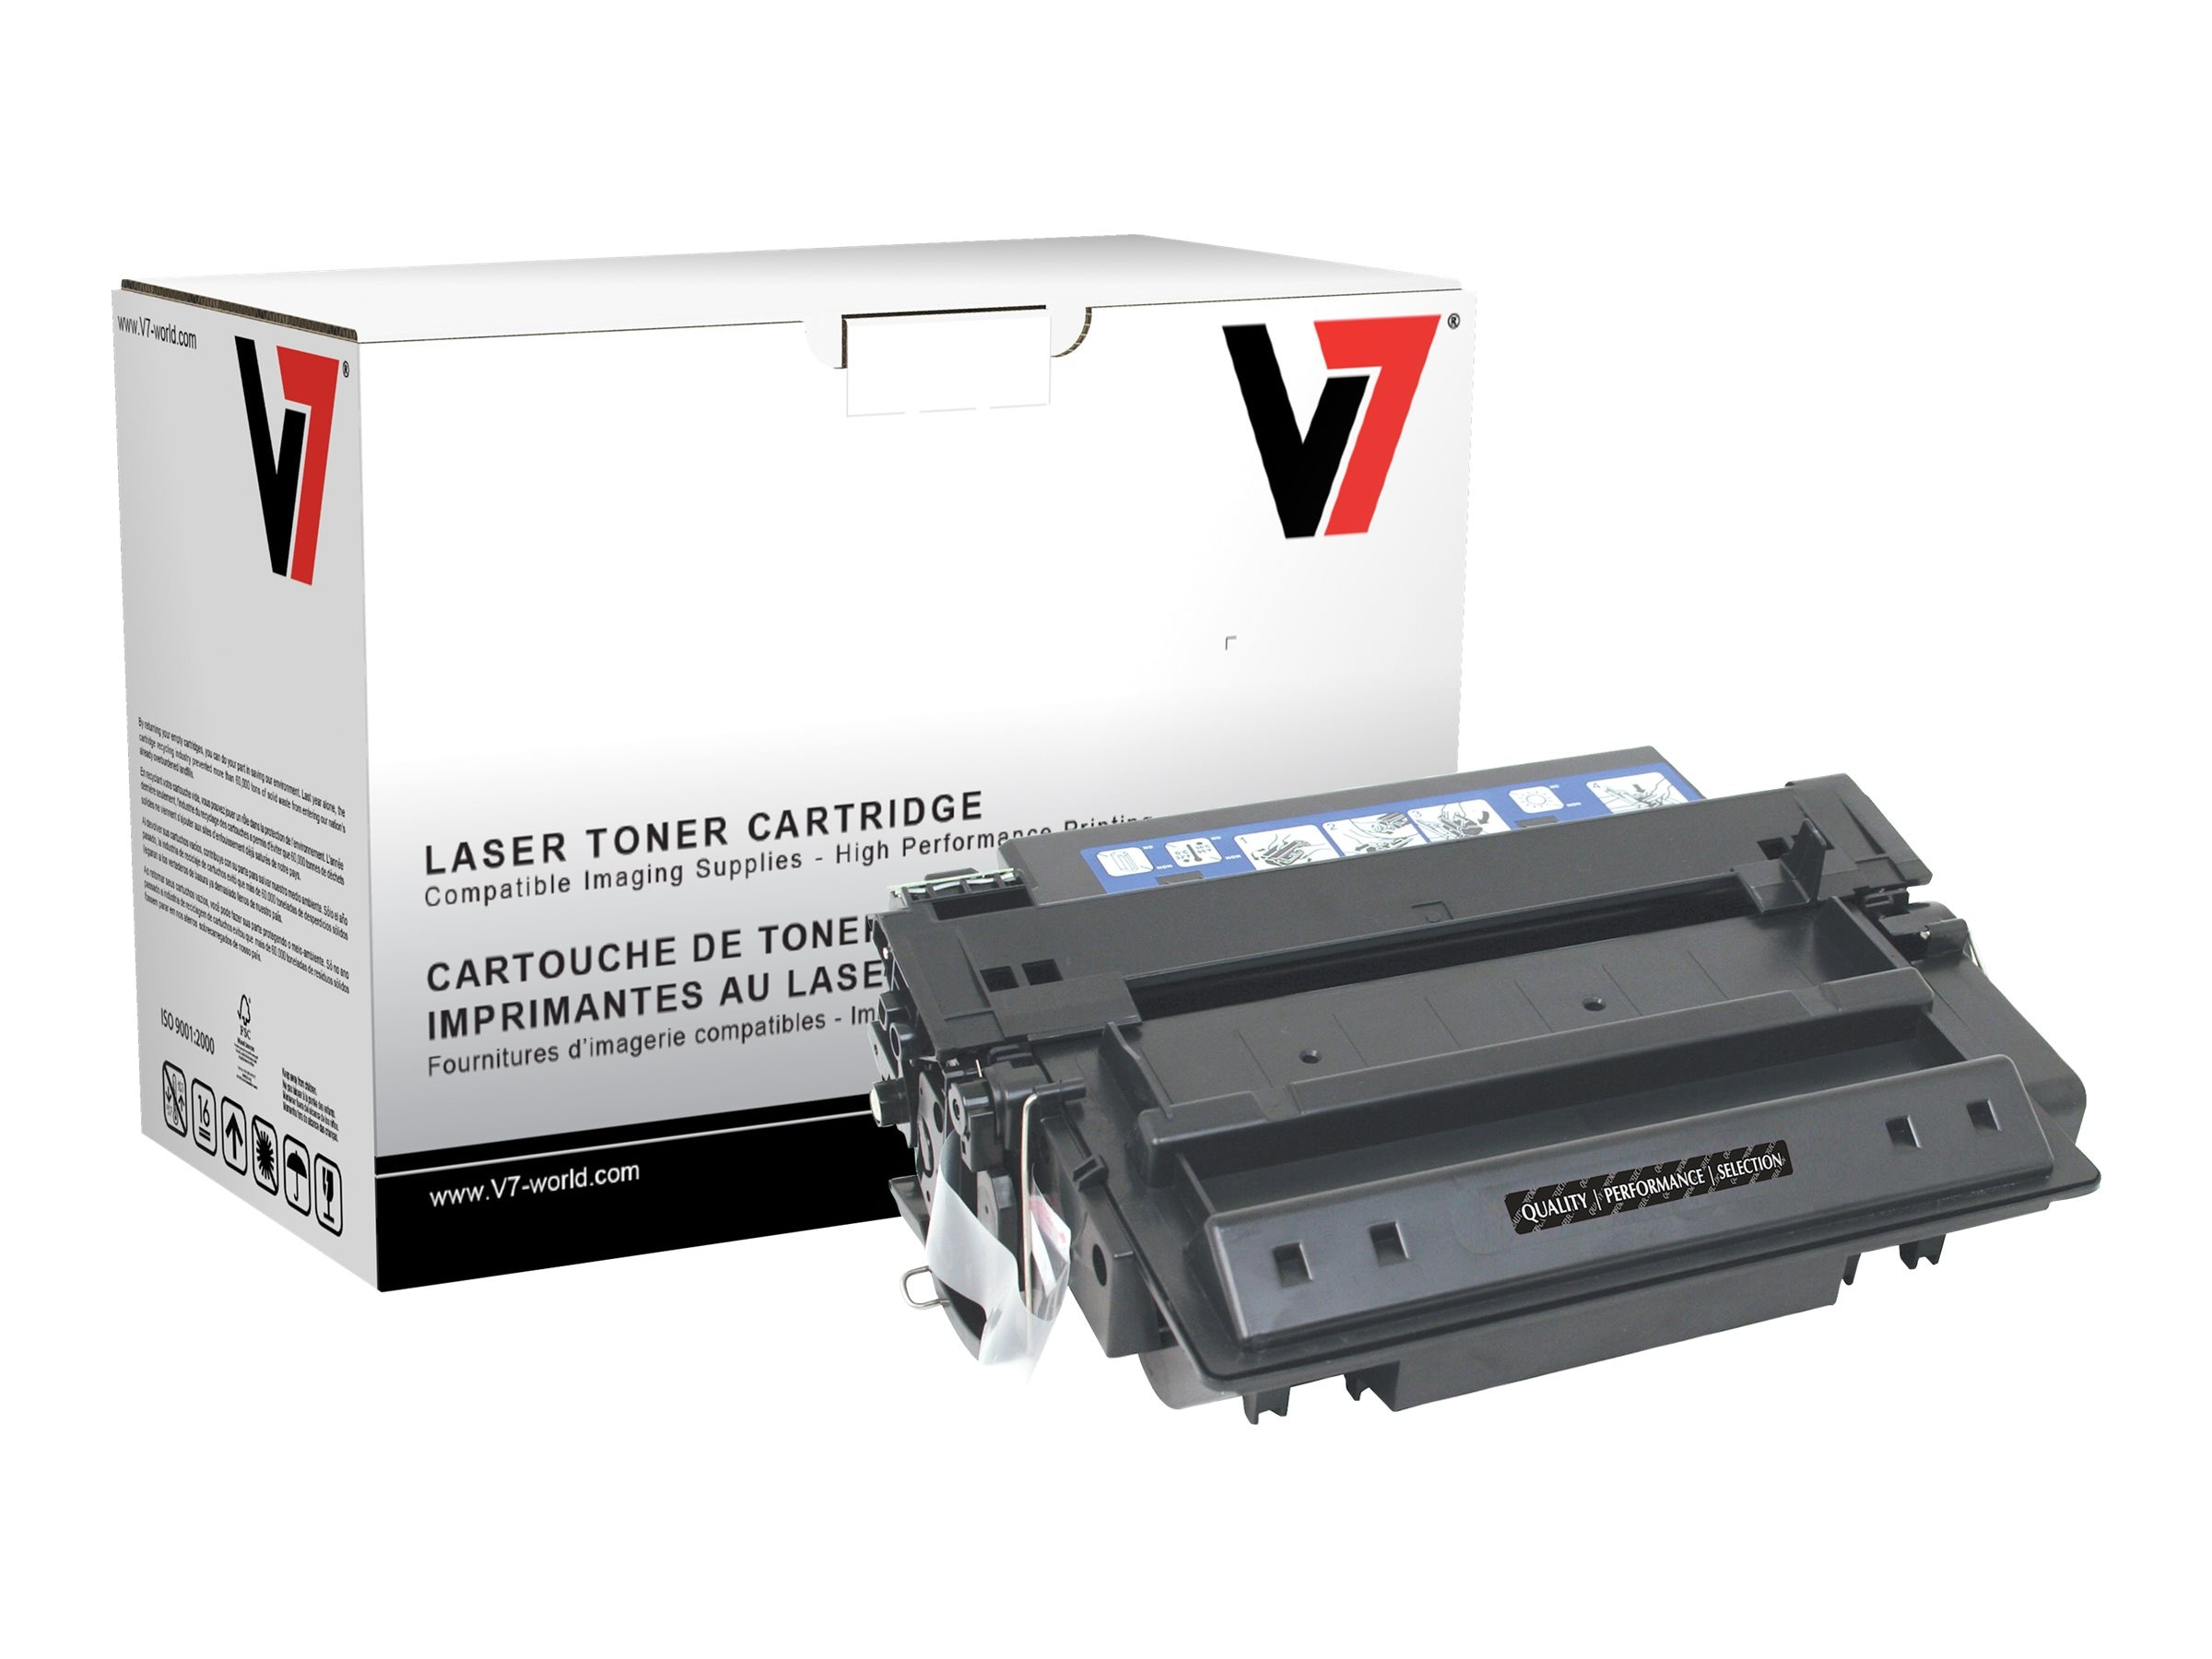 V7 Q7551X Black Ultra High Yield Toner Cartridge for HP LaserJet P3005 (TAA Compliant), THK27551JX